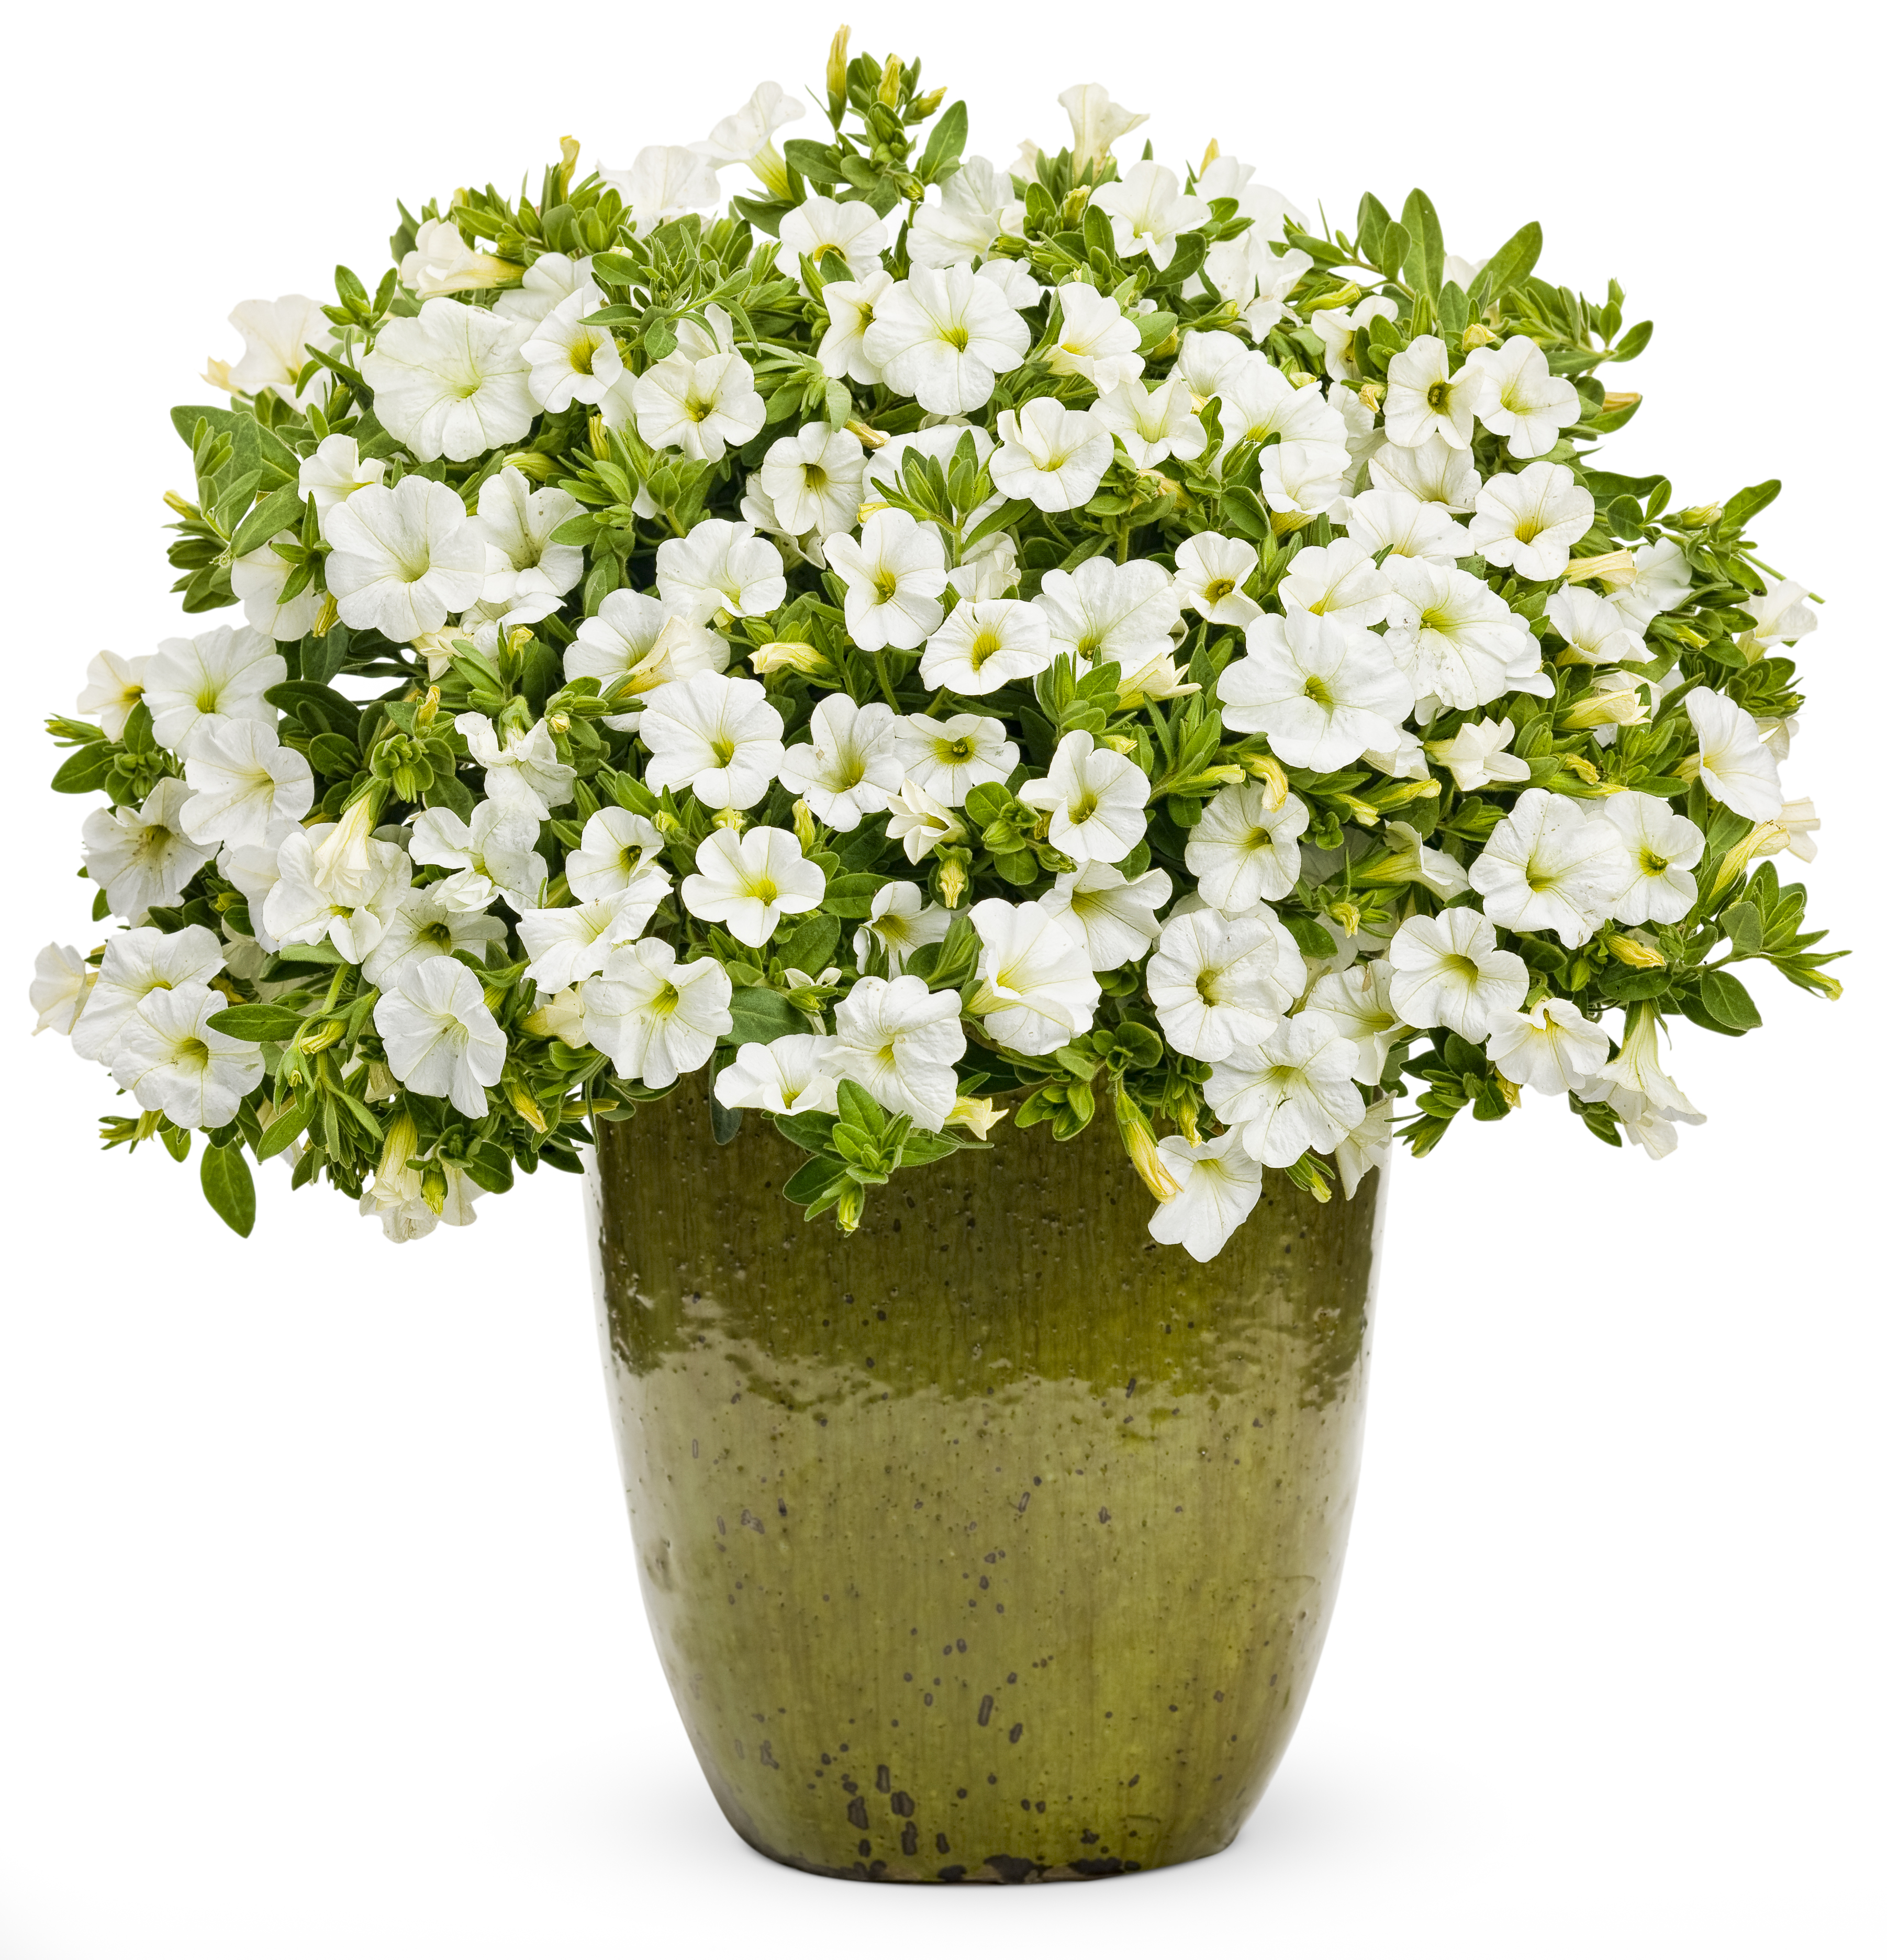 Flower Pots With Flowers Png Flower pot pla - Flower Pot PNG